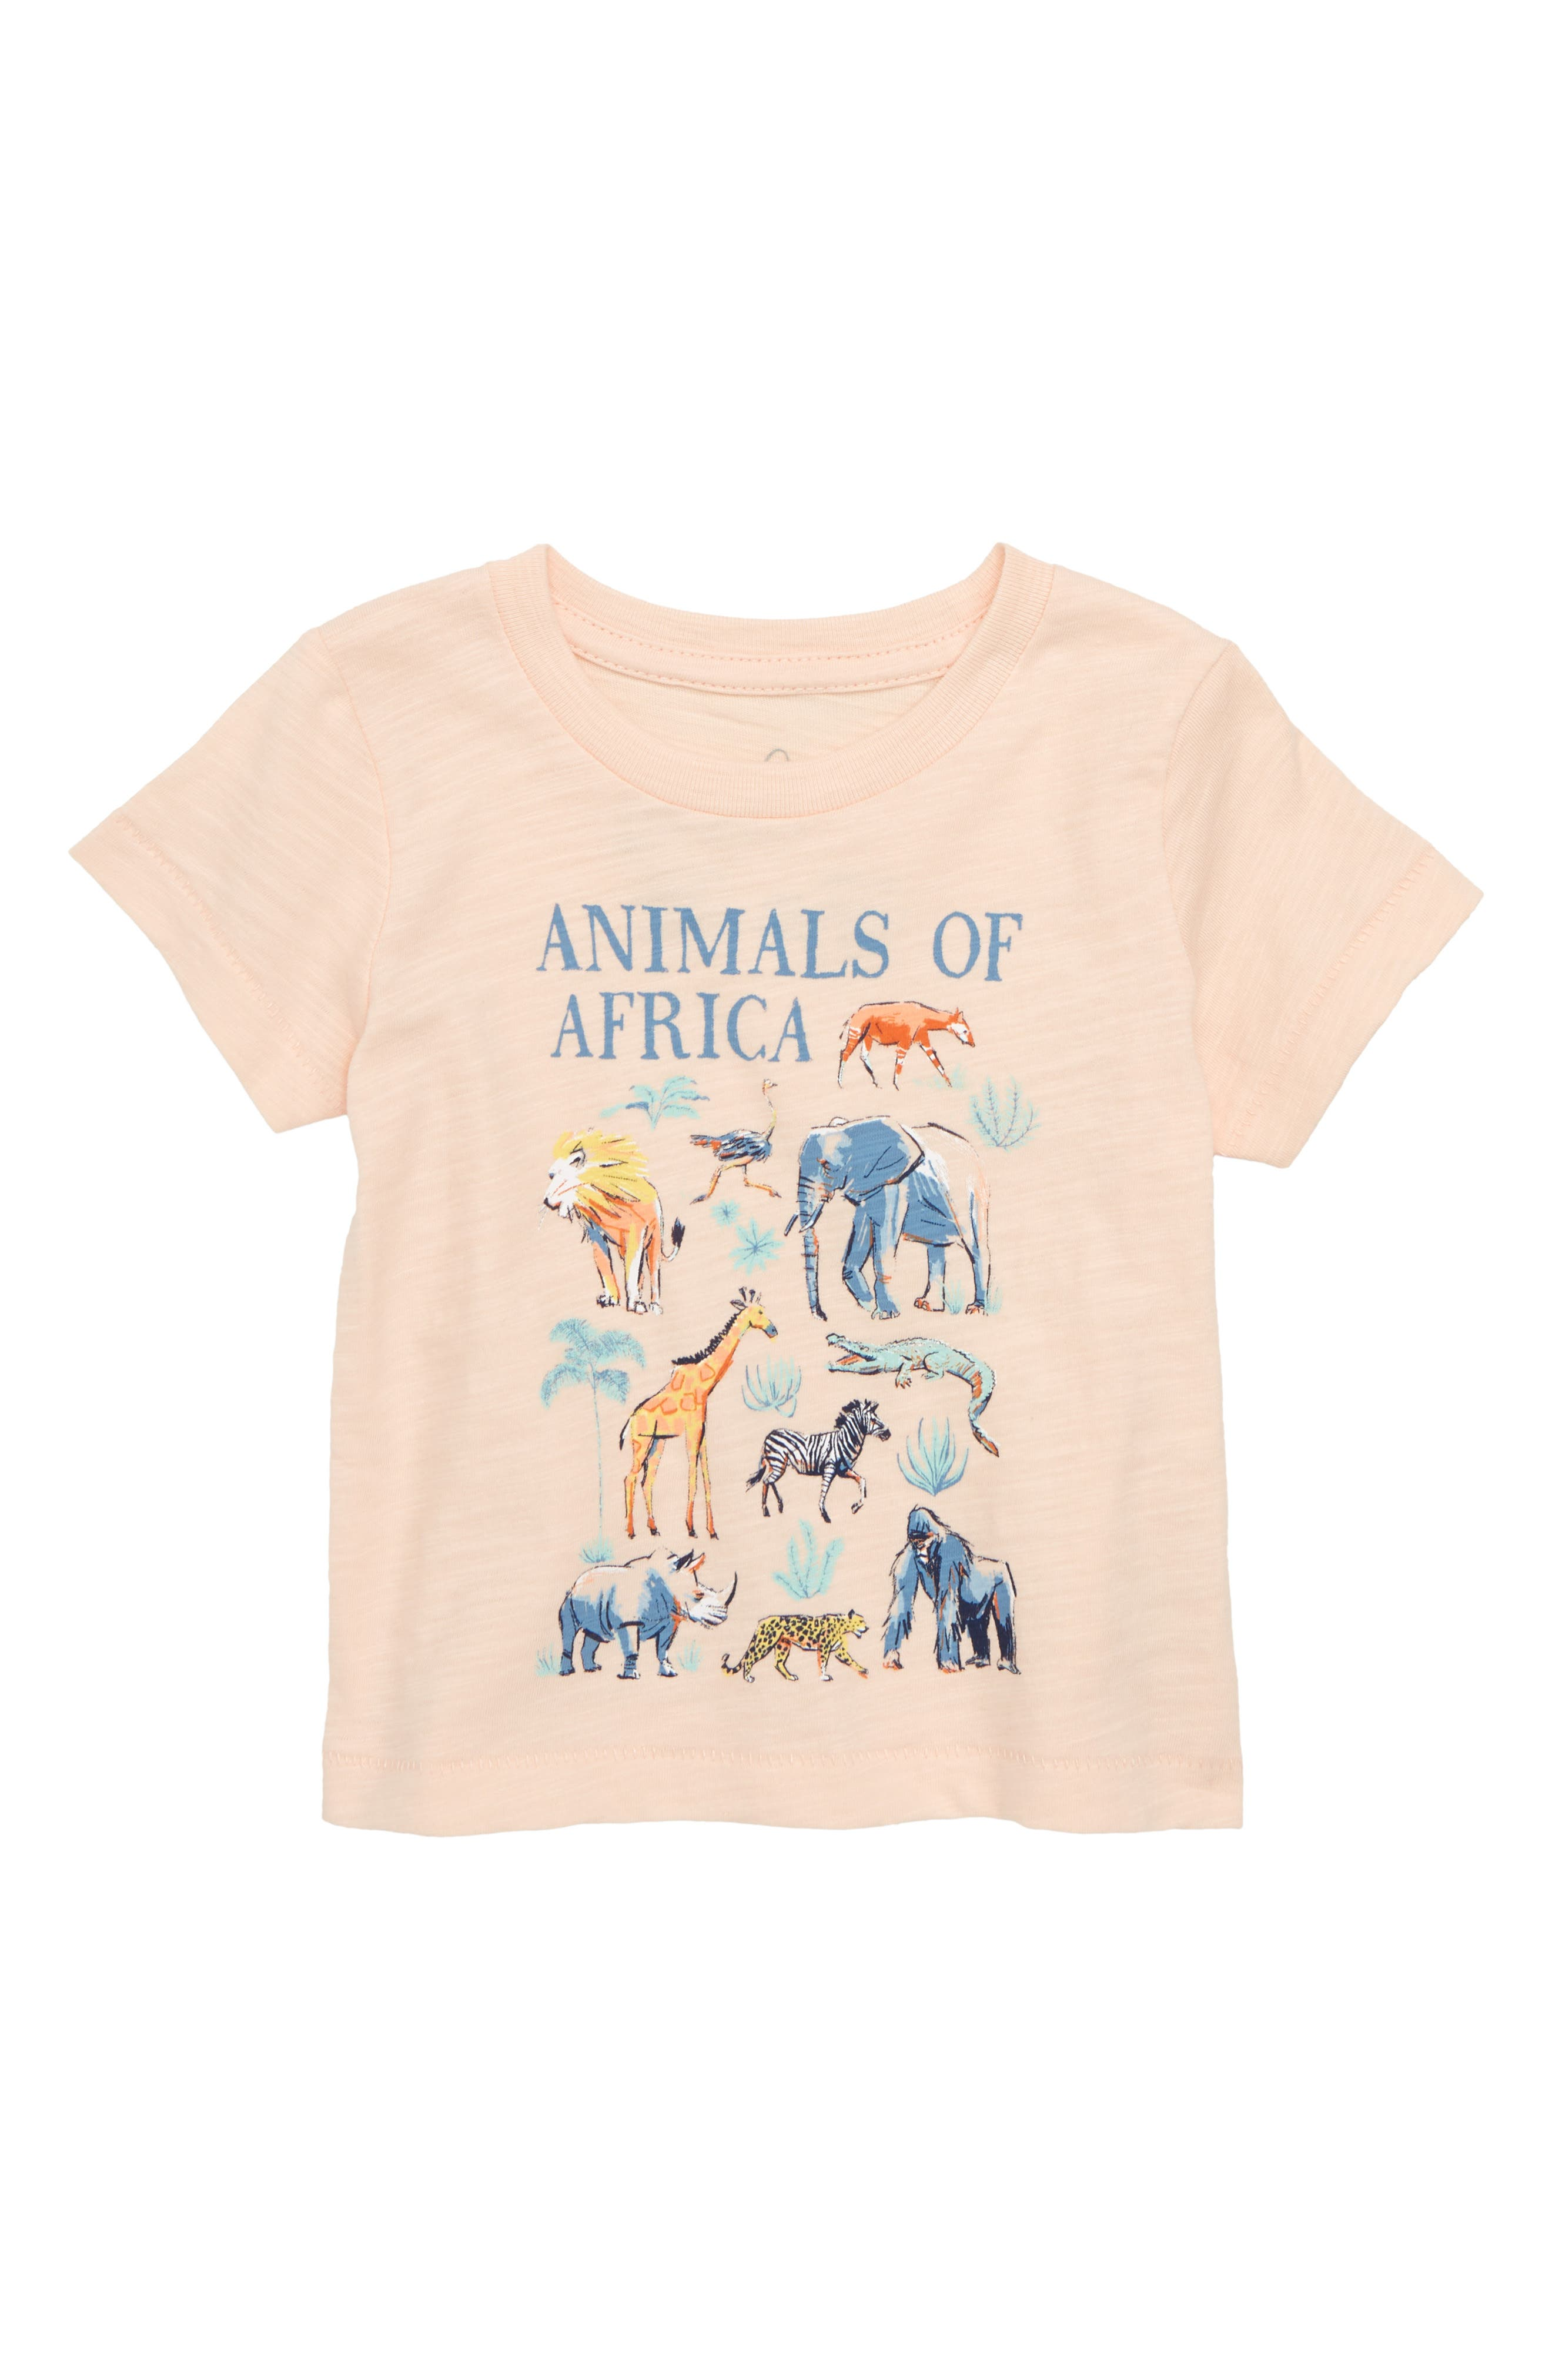 Animals of Africa Graphic Tee,                         Main,                         color, 950